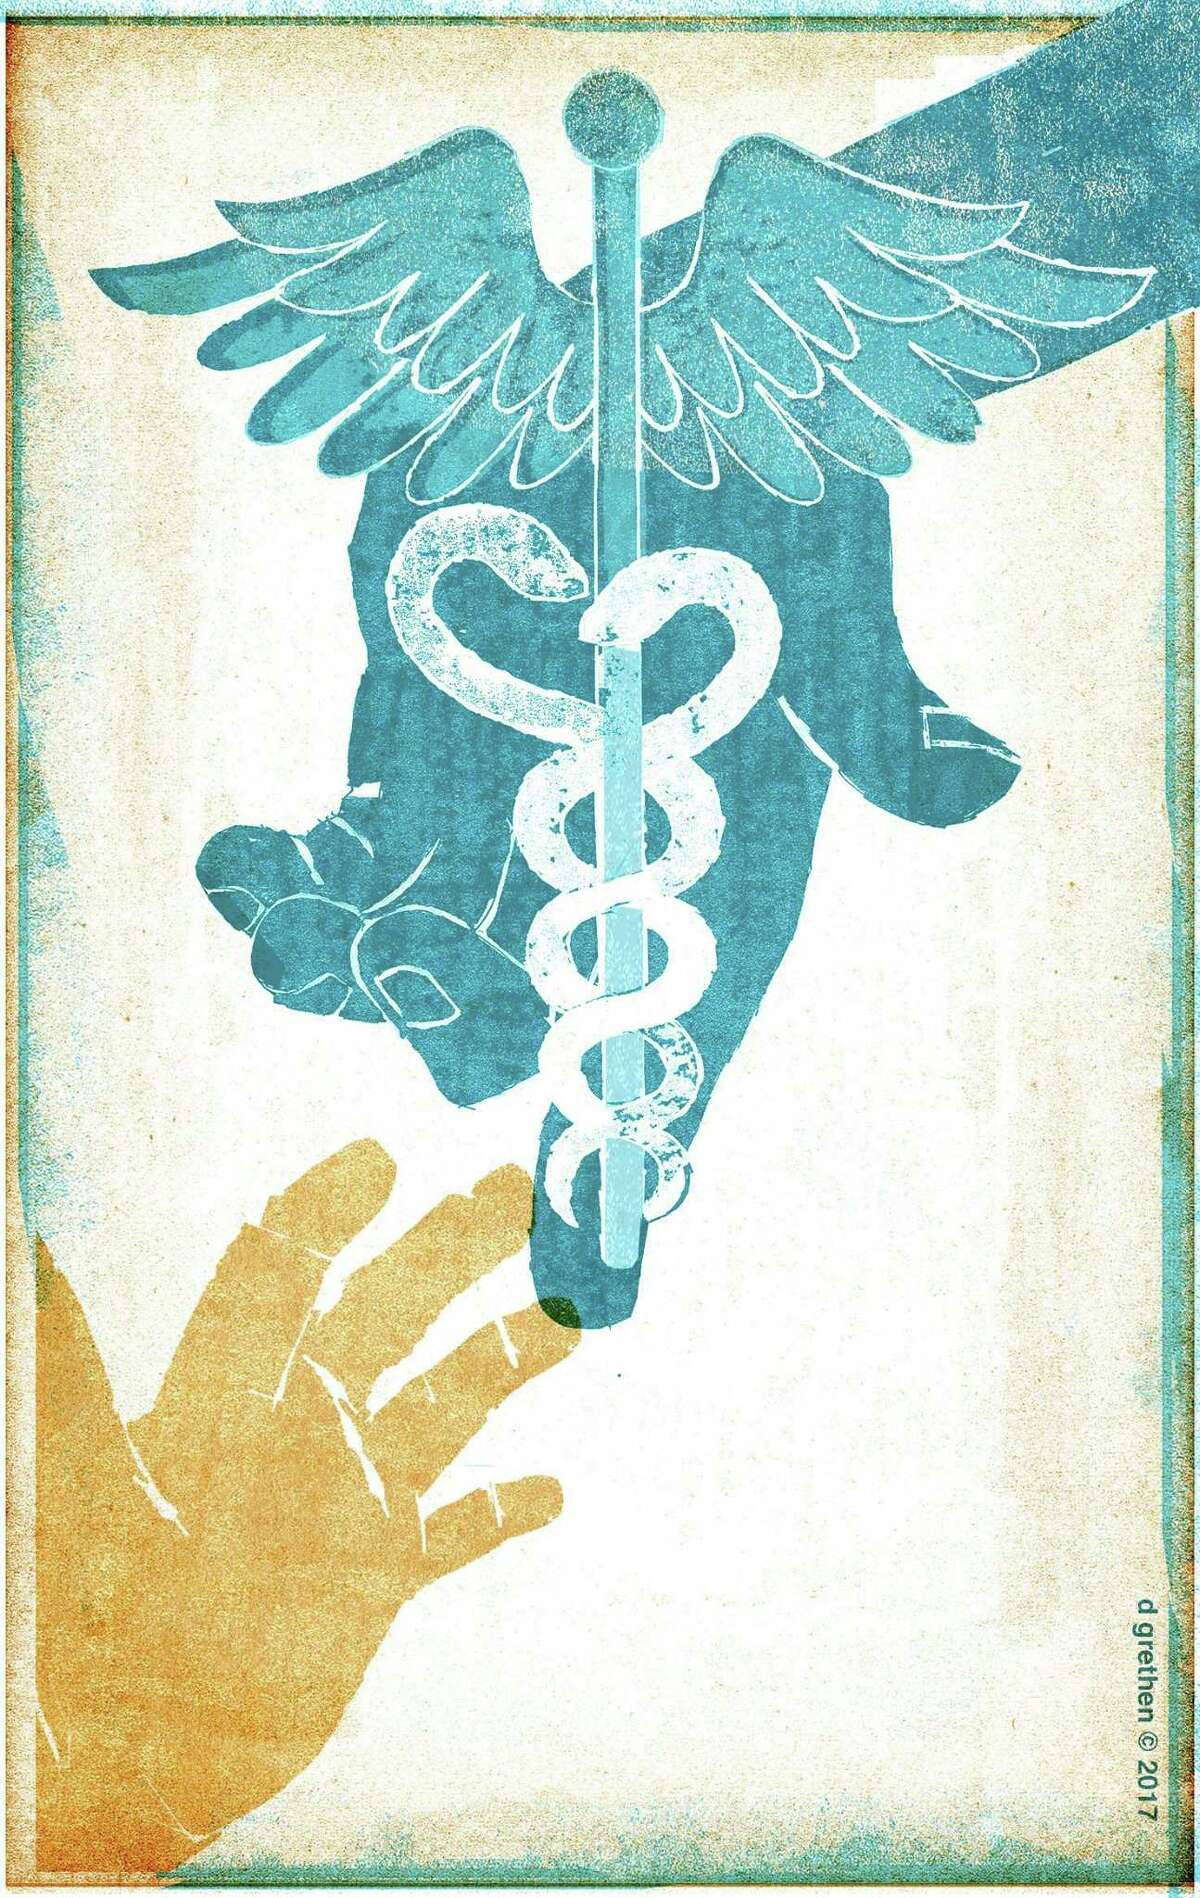 This artwork by Donna Grethen refers to preserving health care for our neediest and for children.